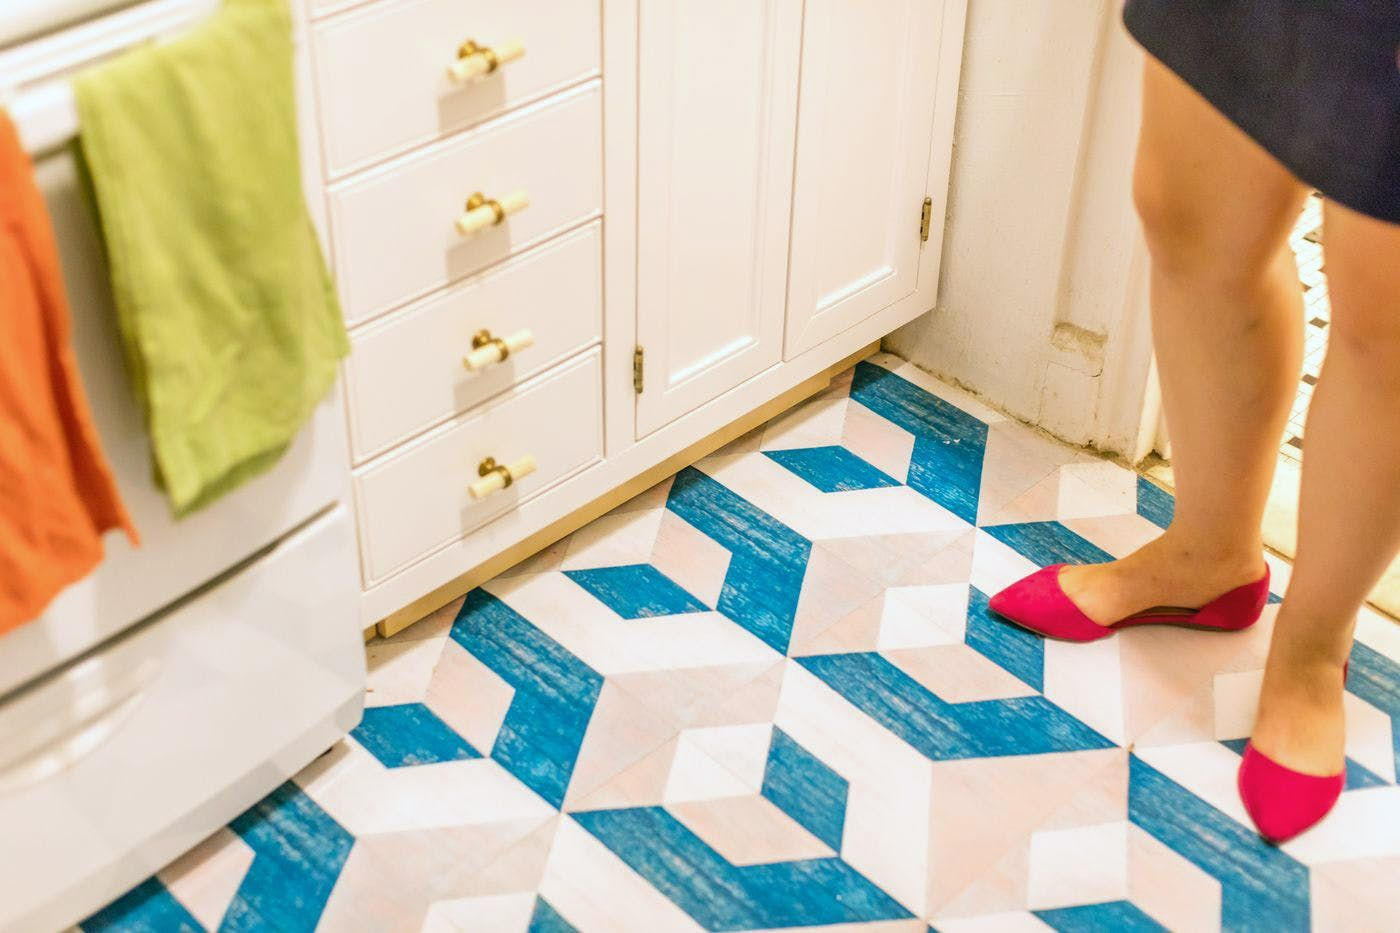 Our Guide To The Best Peel Stick Decorative Tile Decals Tile Decals Decorative Tile Vinyl Tile Flooring